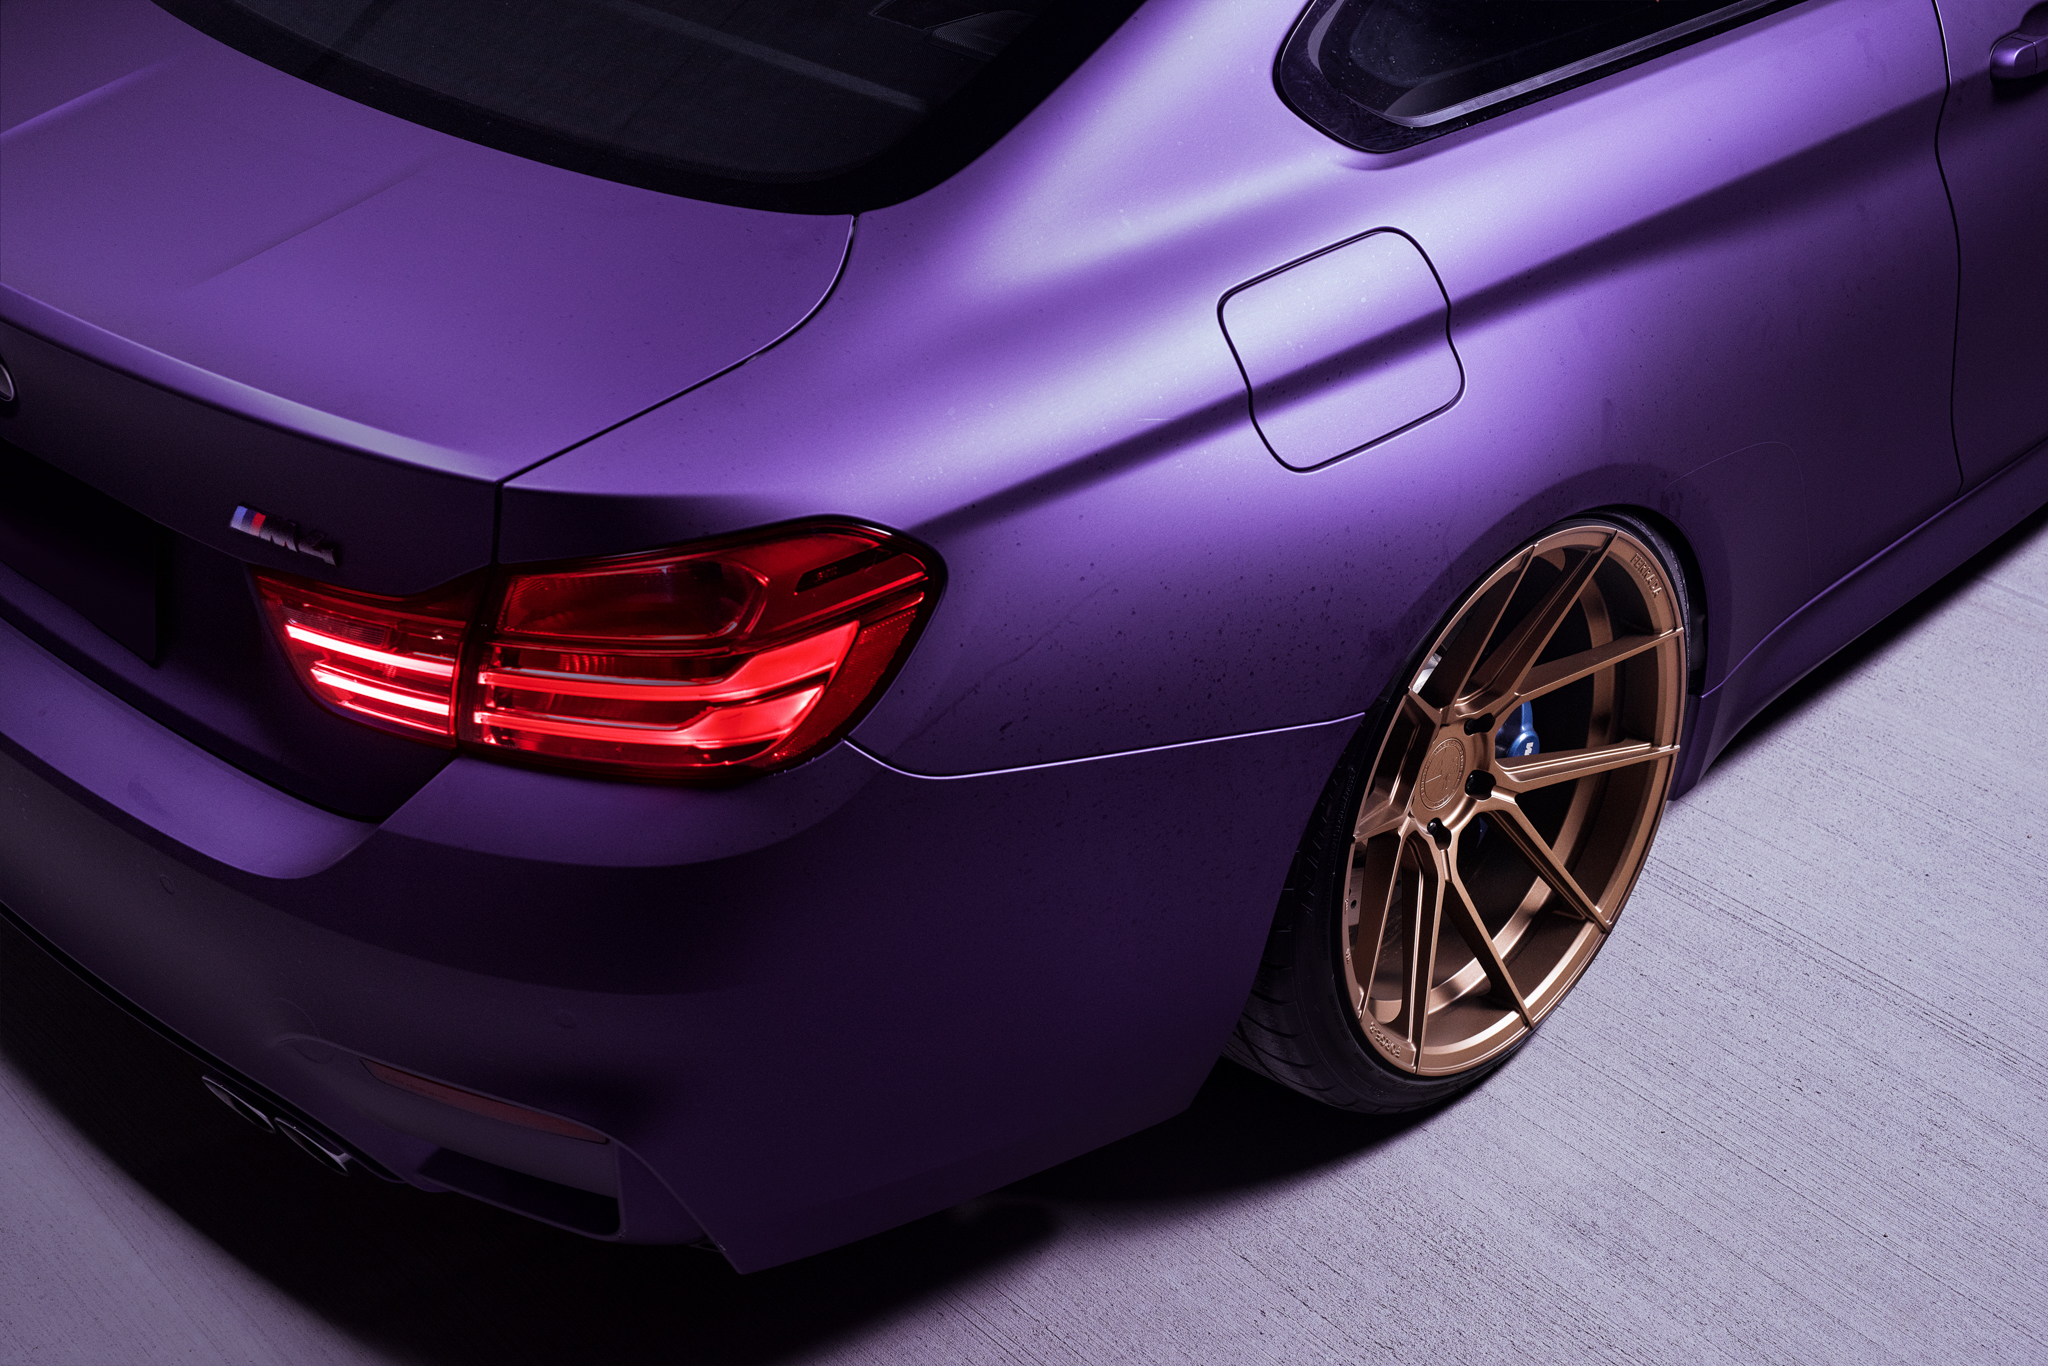 BMW M4 & M6 in Matte Purple (4)